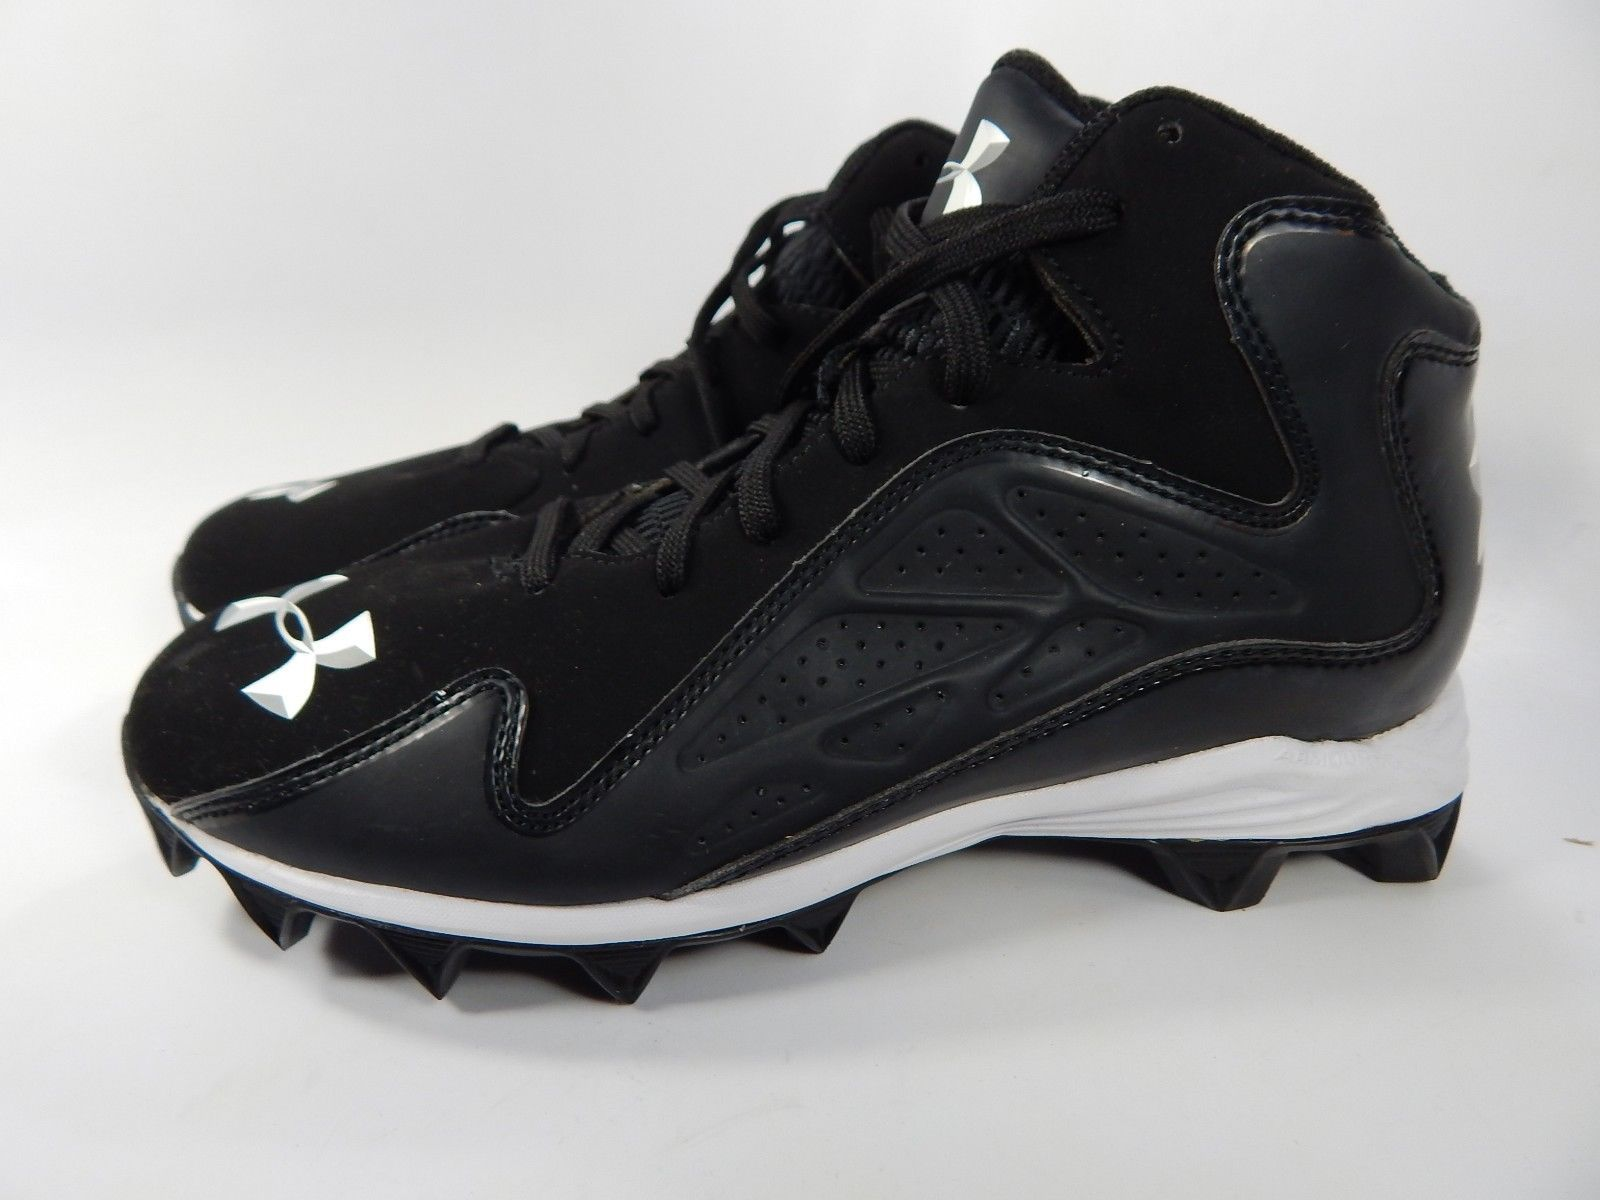 Under Armour Renegade Mid Top Size 1 Y EU 32 Youth Boy's Men's Football Cleat